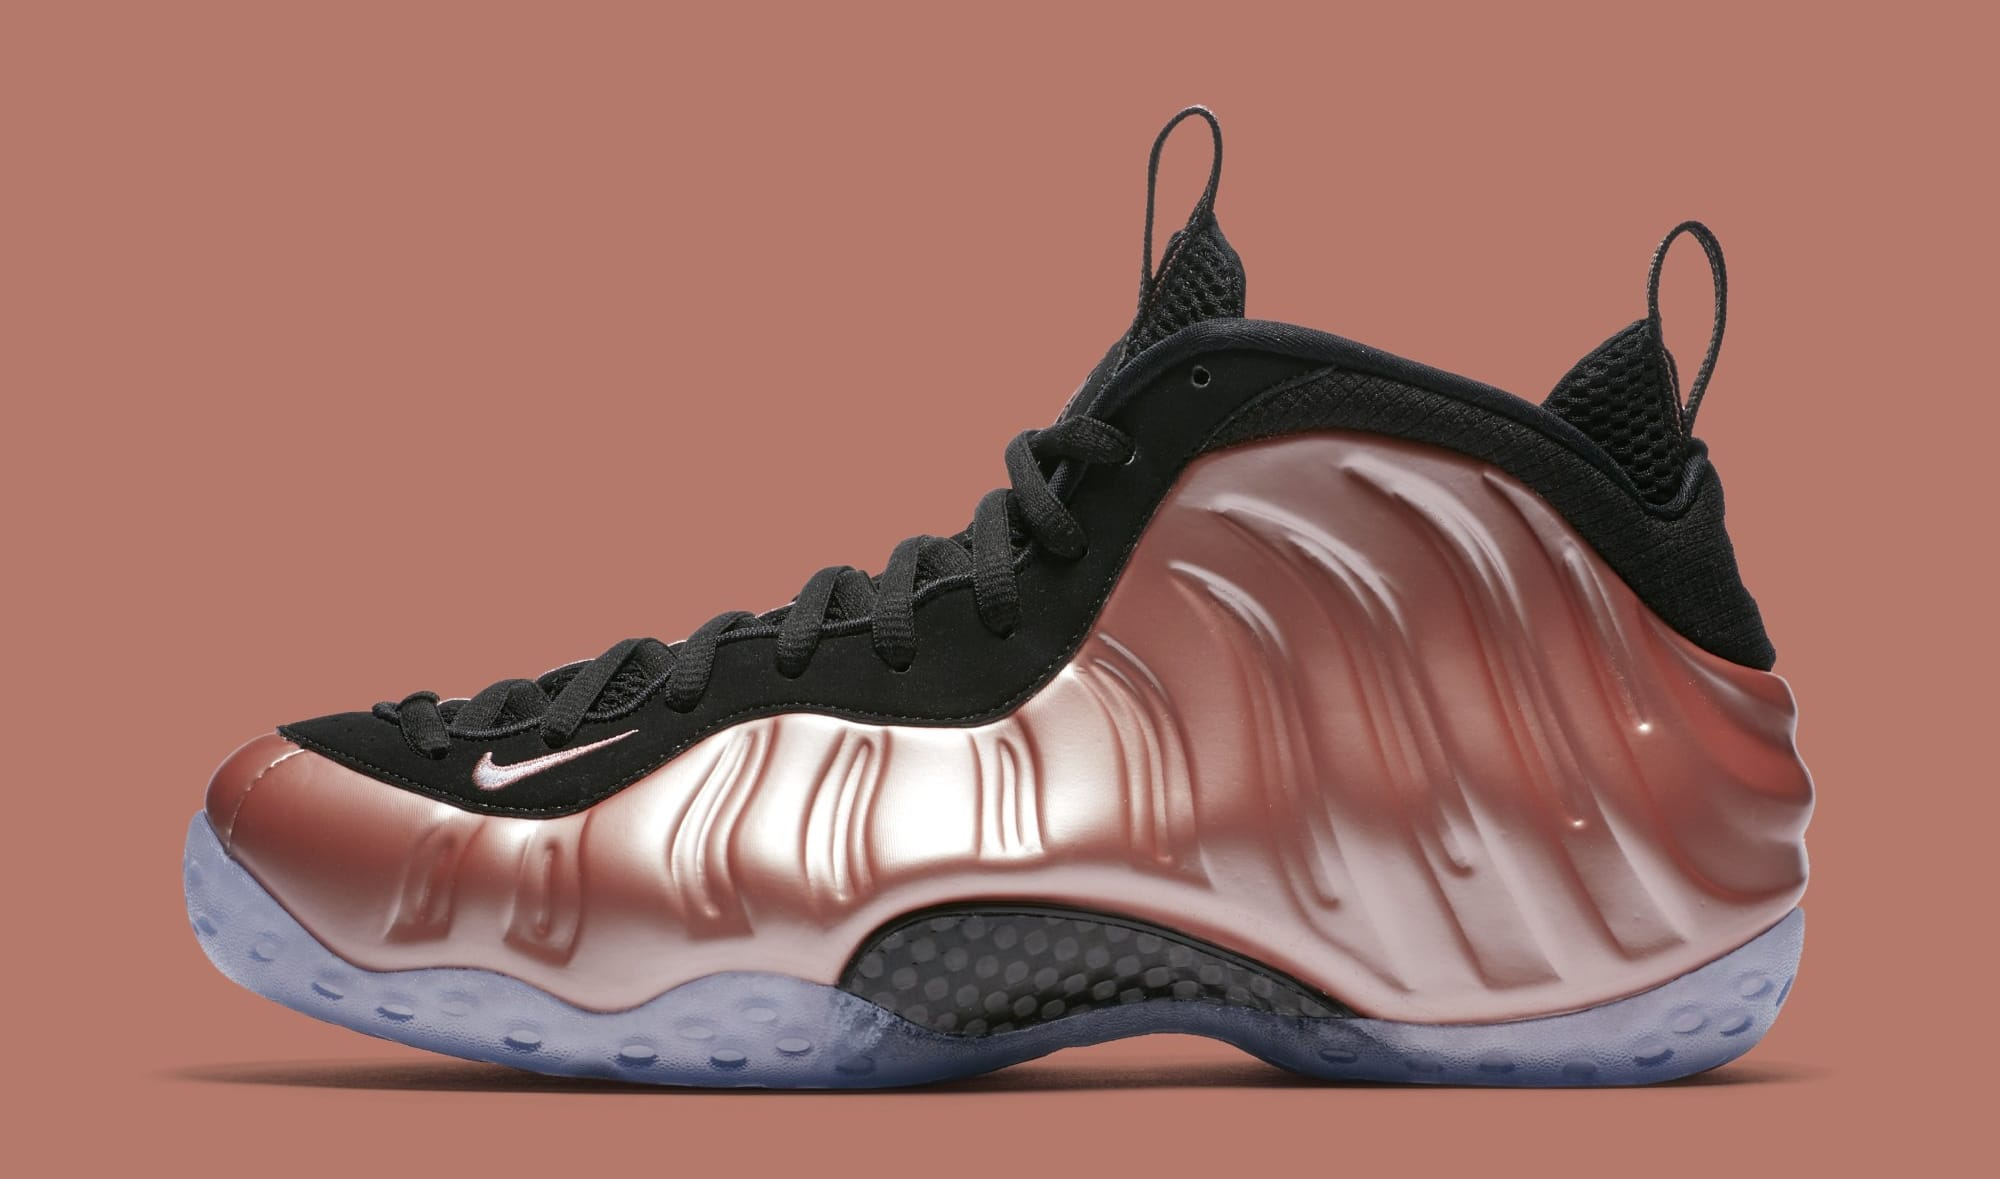 Nike Air Foamposite One 'Elemental Rose' 314996-602 (Lateral)